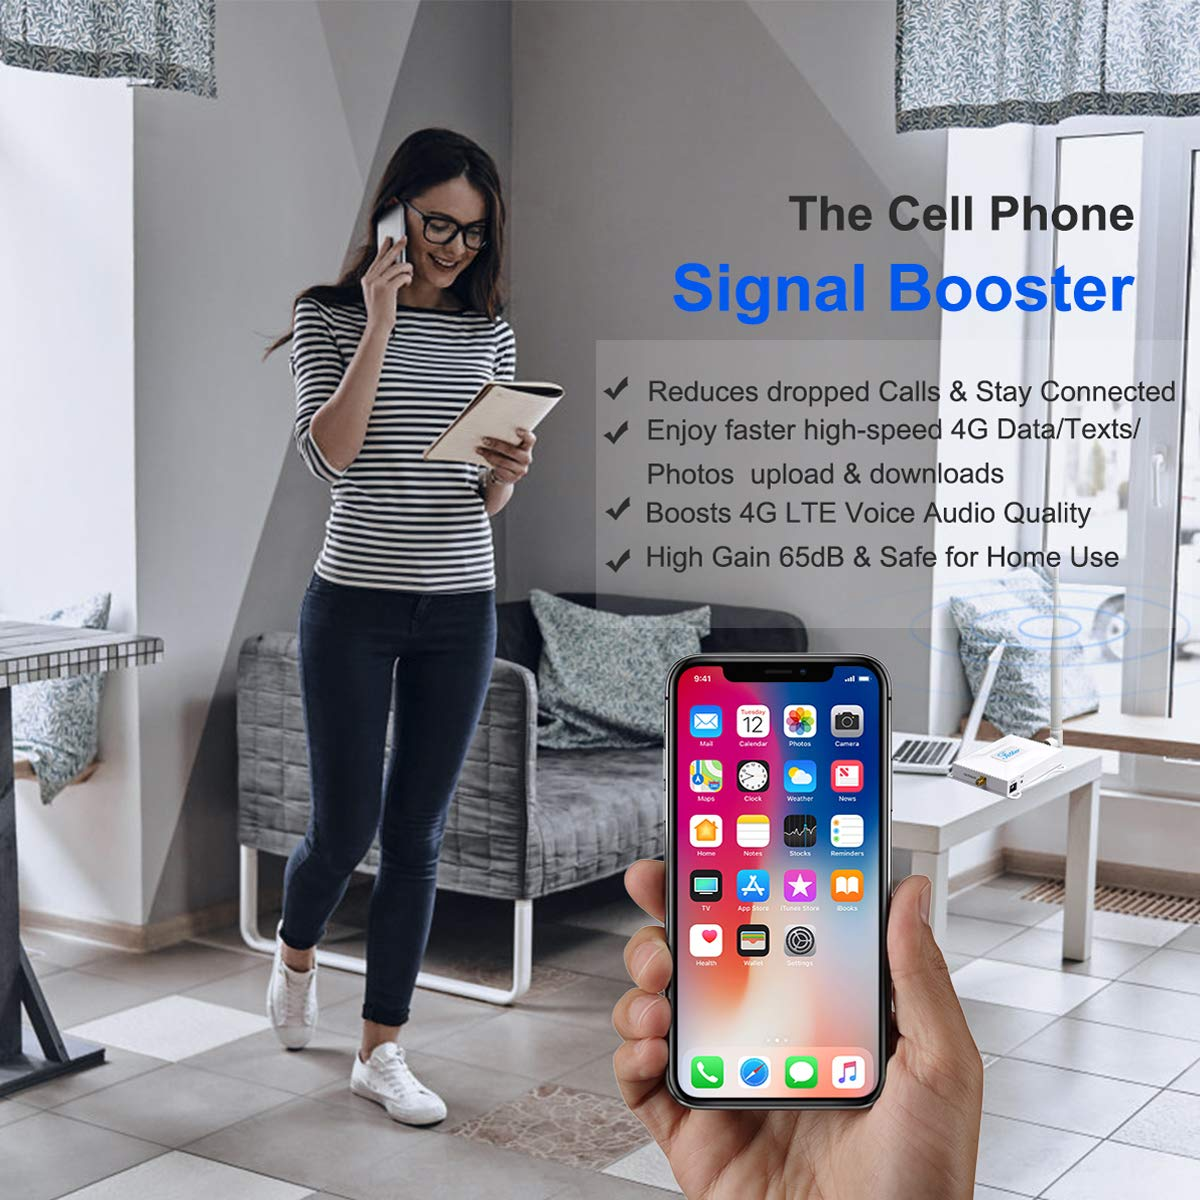 Cellular Increase 4g Data Cell Service Antennas Yagi Whip At T Cricket Cell Signal Booster 4g Lte Cell Phone Signal Booster Amplifier Home 700mhz Band 12 17 At T Signal Booster Repeater Cricket U S Signal Boosters